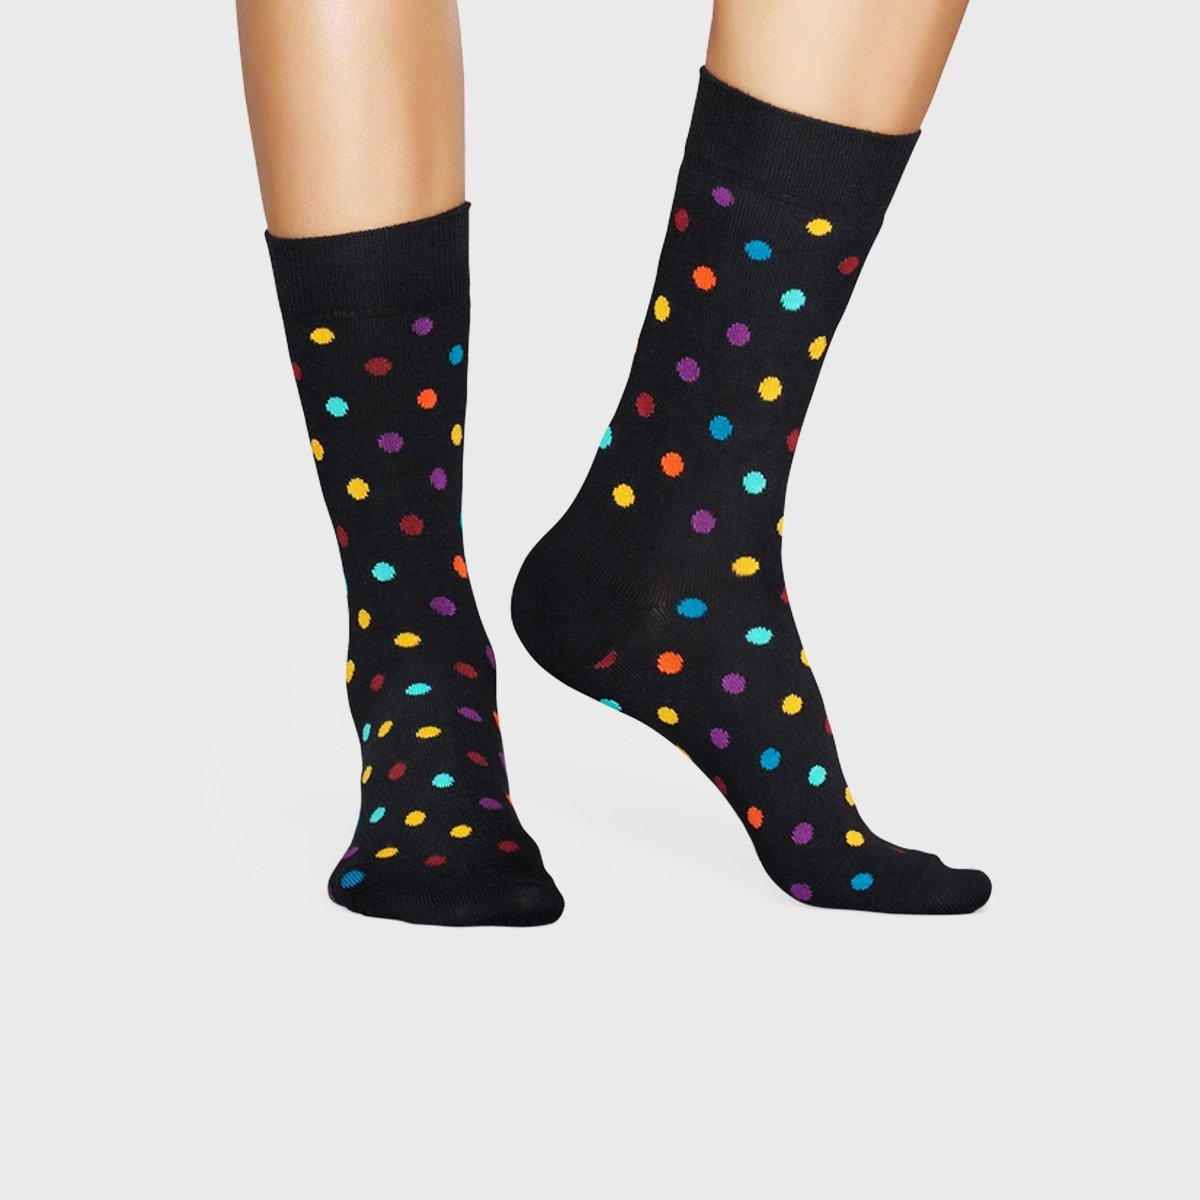 Meia Happy Socks Poá | DOT01-9300